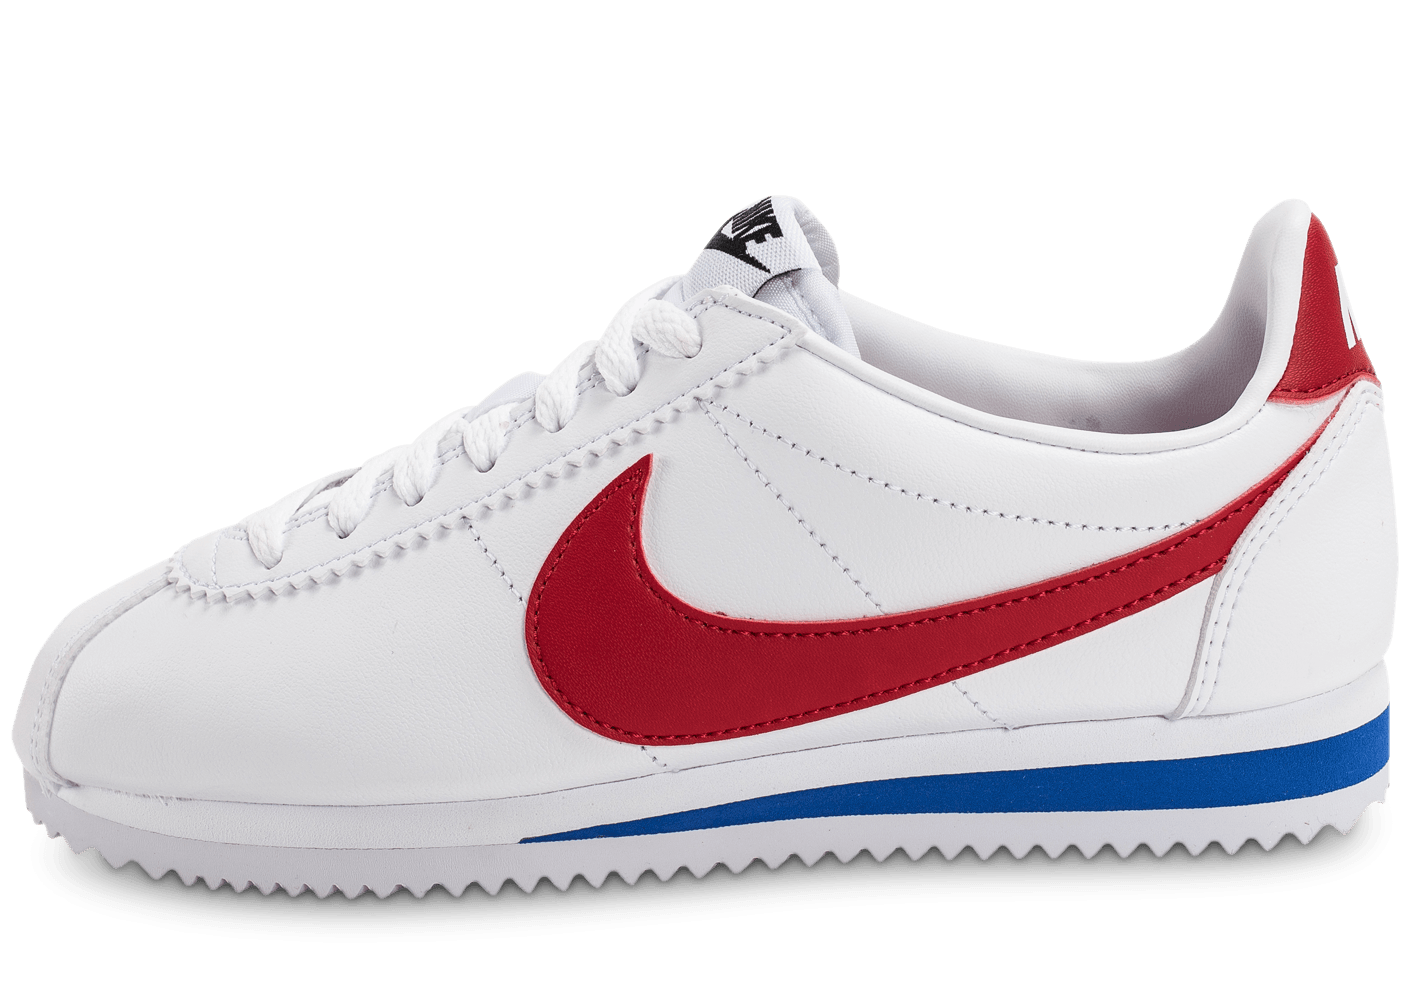 d60fc52683395 ... enfant 9b108 46546  order nike classic cortez leather chaussures black  friday chaussures et baskets chausport fb84a 1f5a4